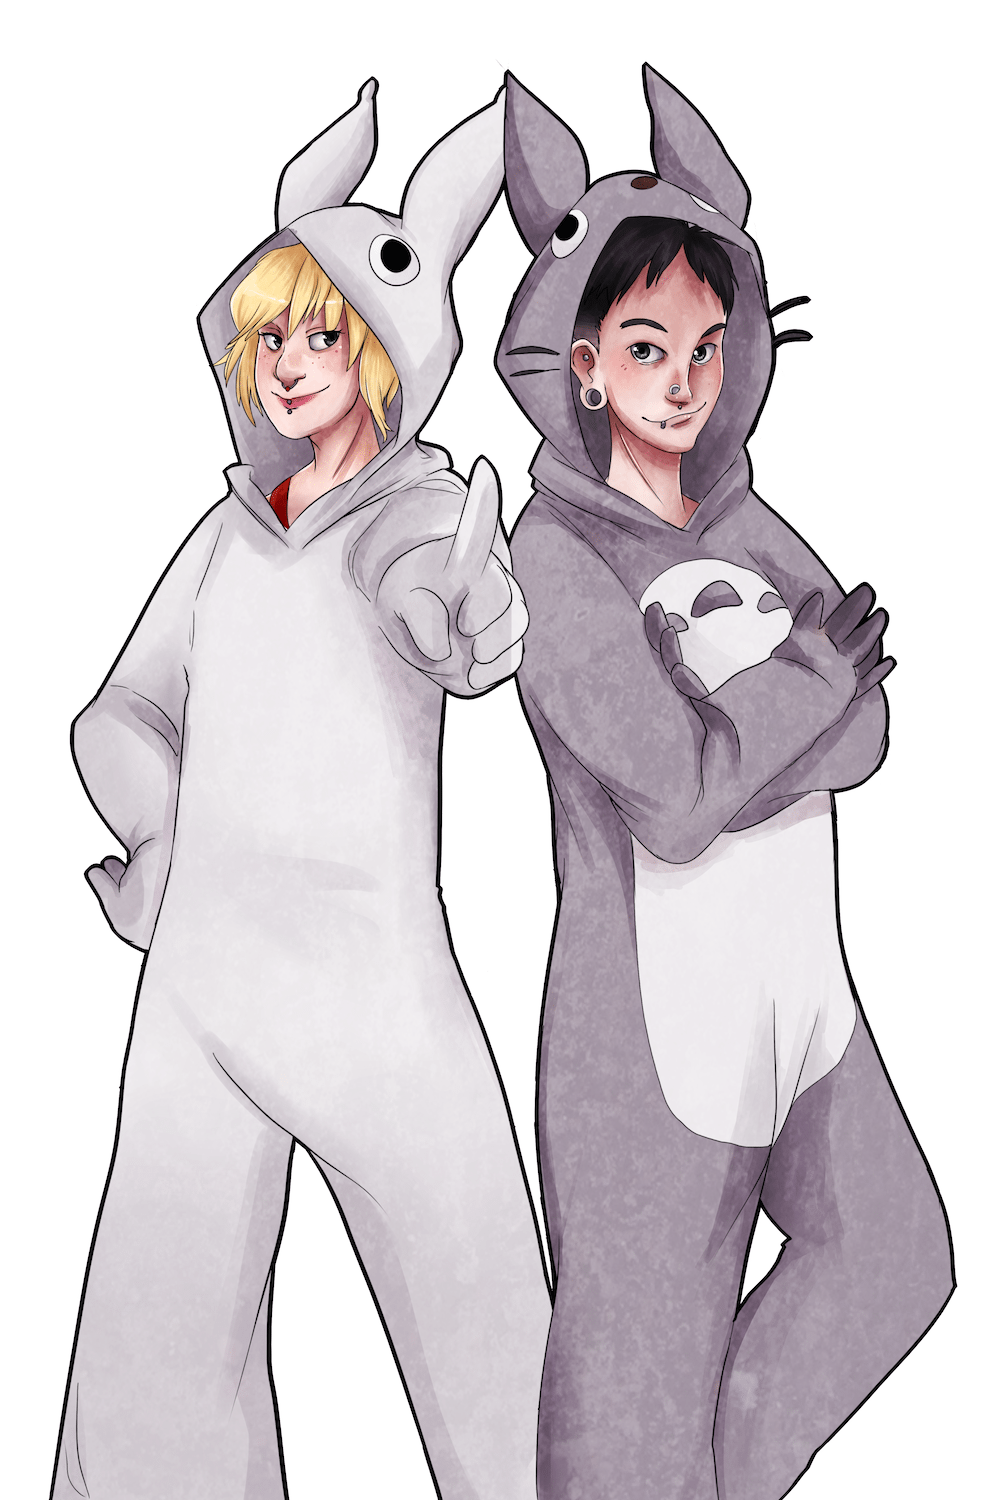 Portrait of The Kigurumi Gang by AruRmz via ArtCorgi v3